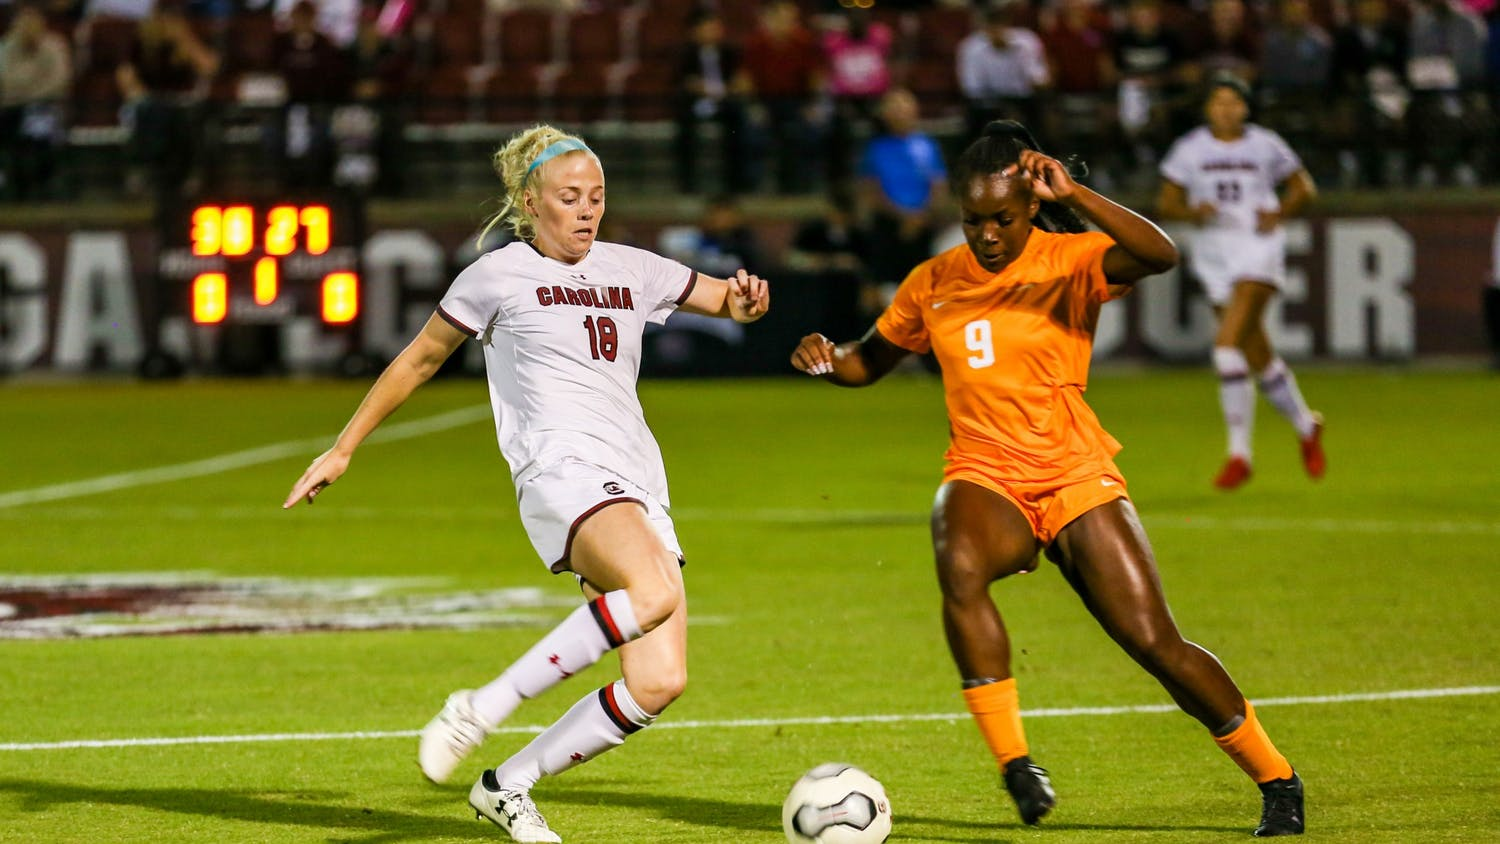 Defender Grace Fisk dribbles around a defender in a game during the 2019 season against Tennessee. The Gamecocks lost 1-0 to the Volunteers on Friday.